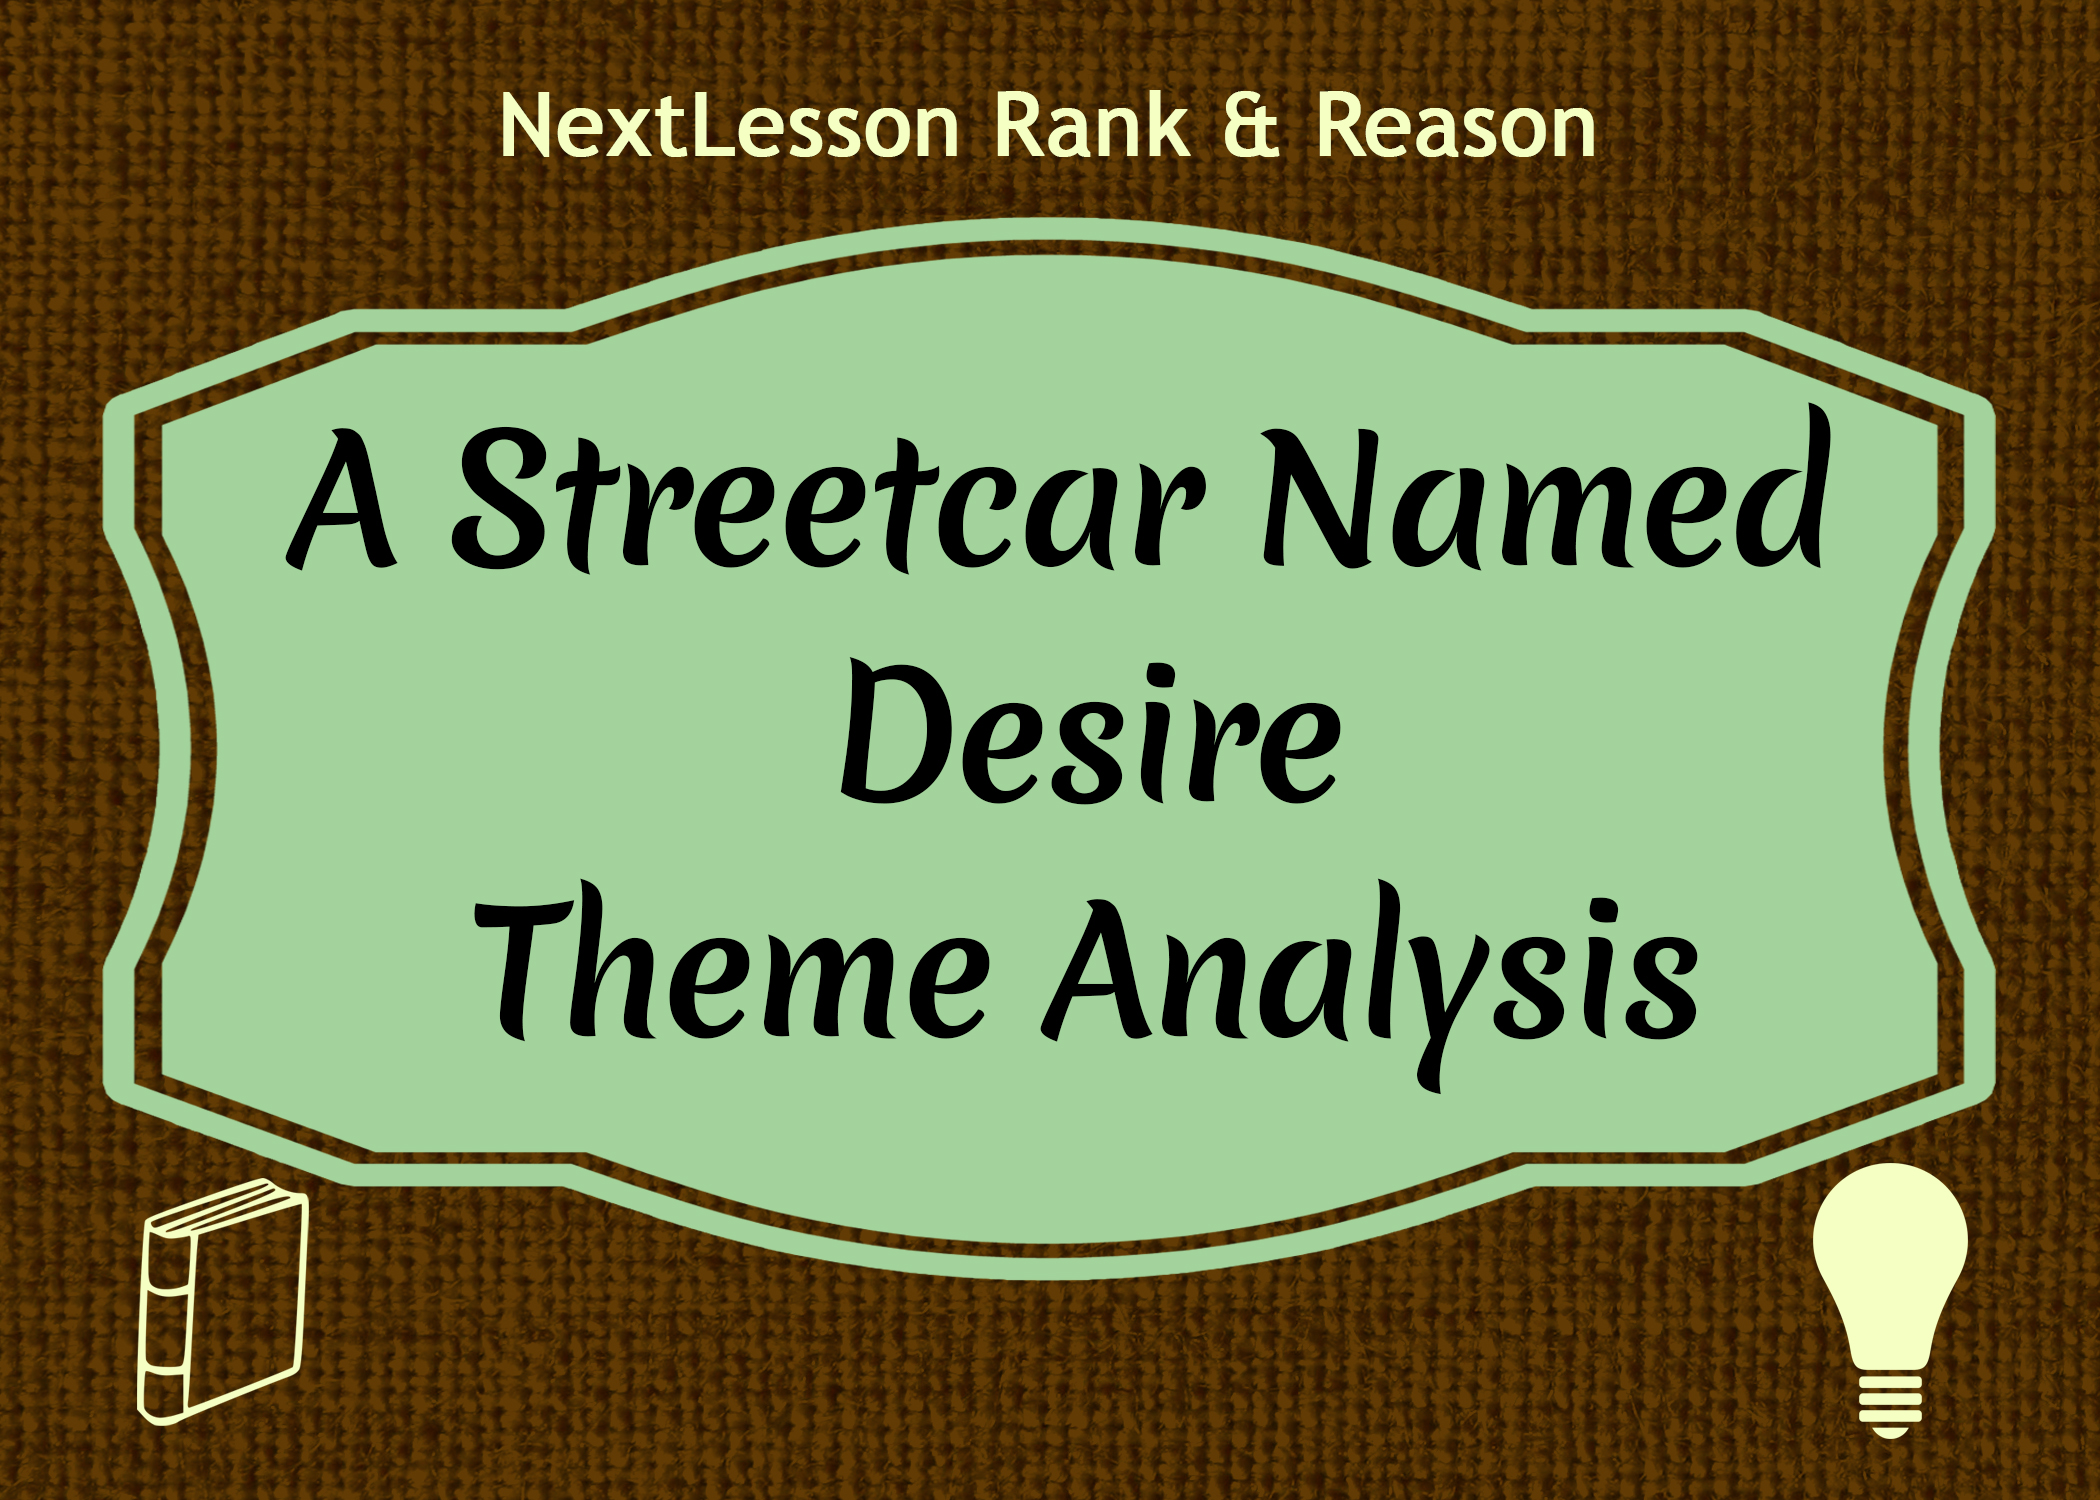 coursework questions streetcar named desire Free essays from bartleby | illusions and fantasy in tennessee williams' a streetcar named desire 'a streetcar named desire', by tennessee williams, explores.